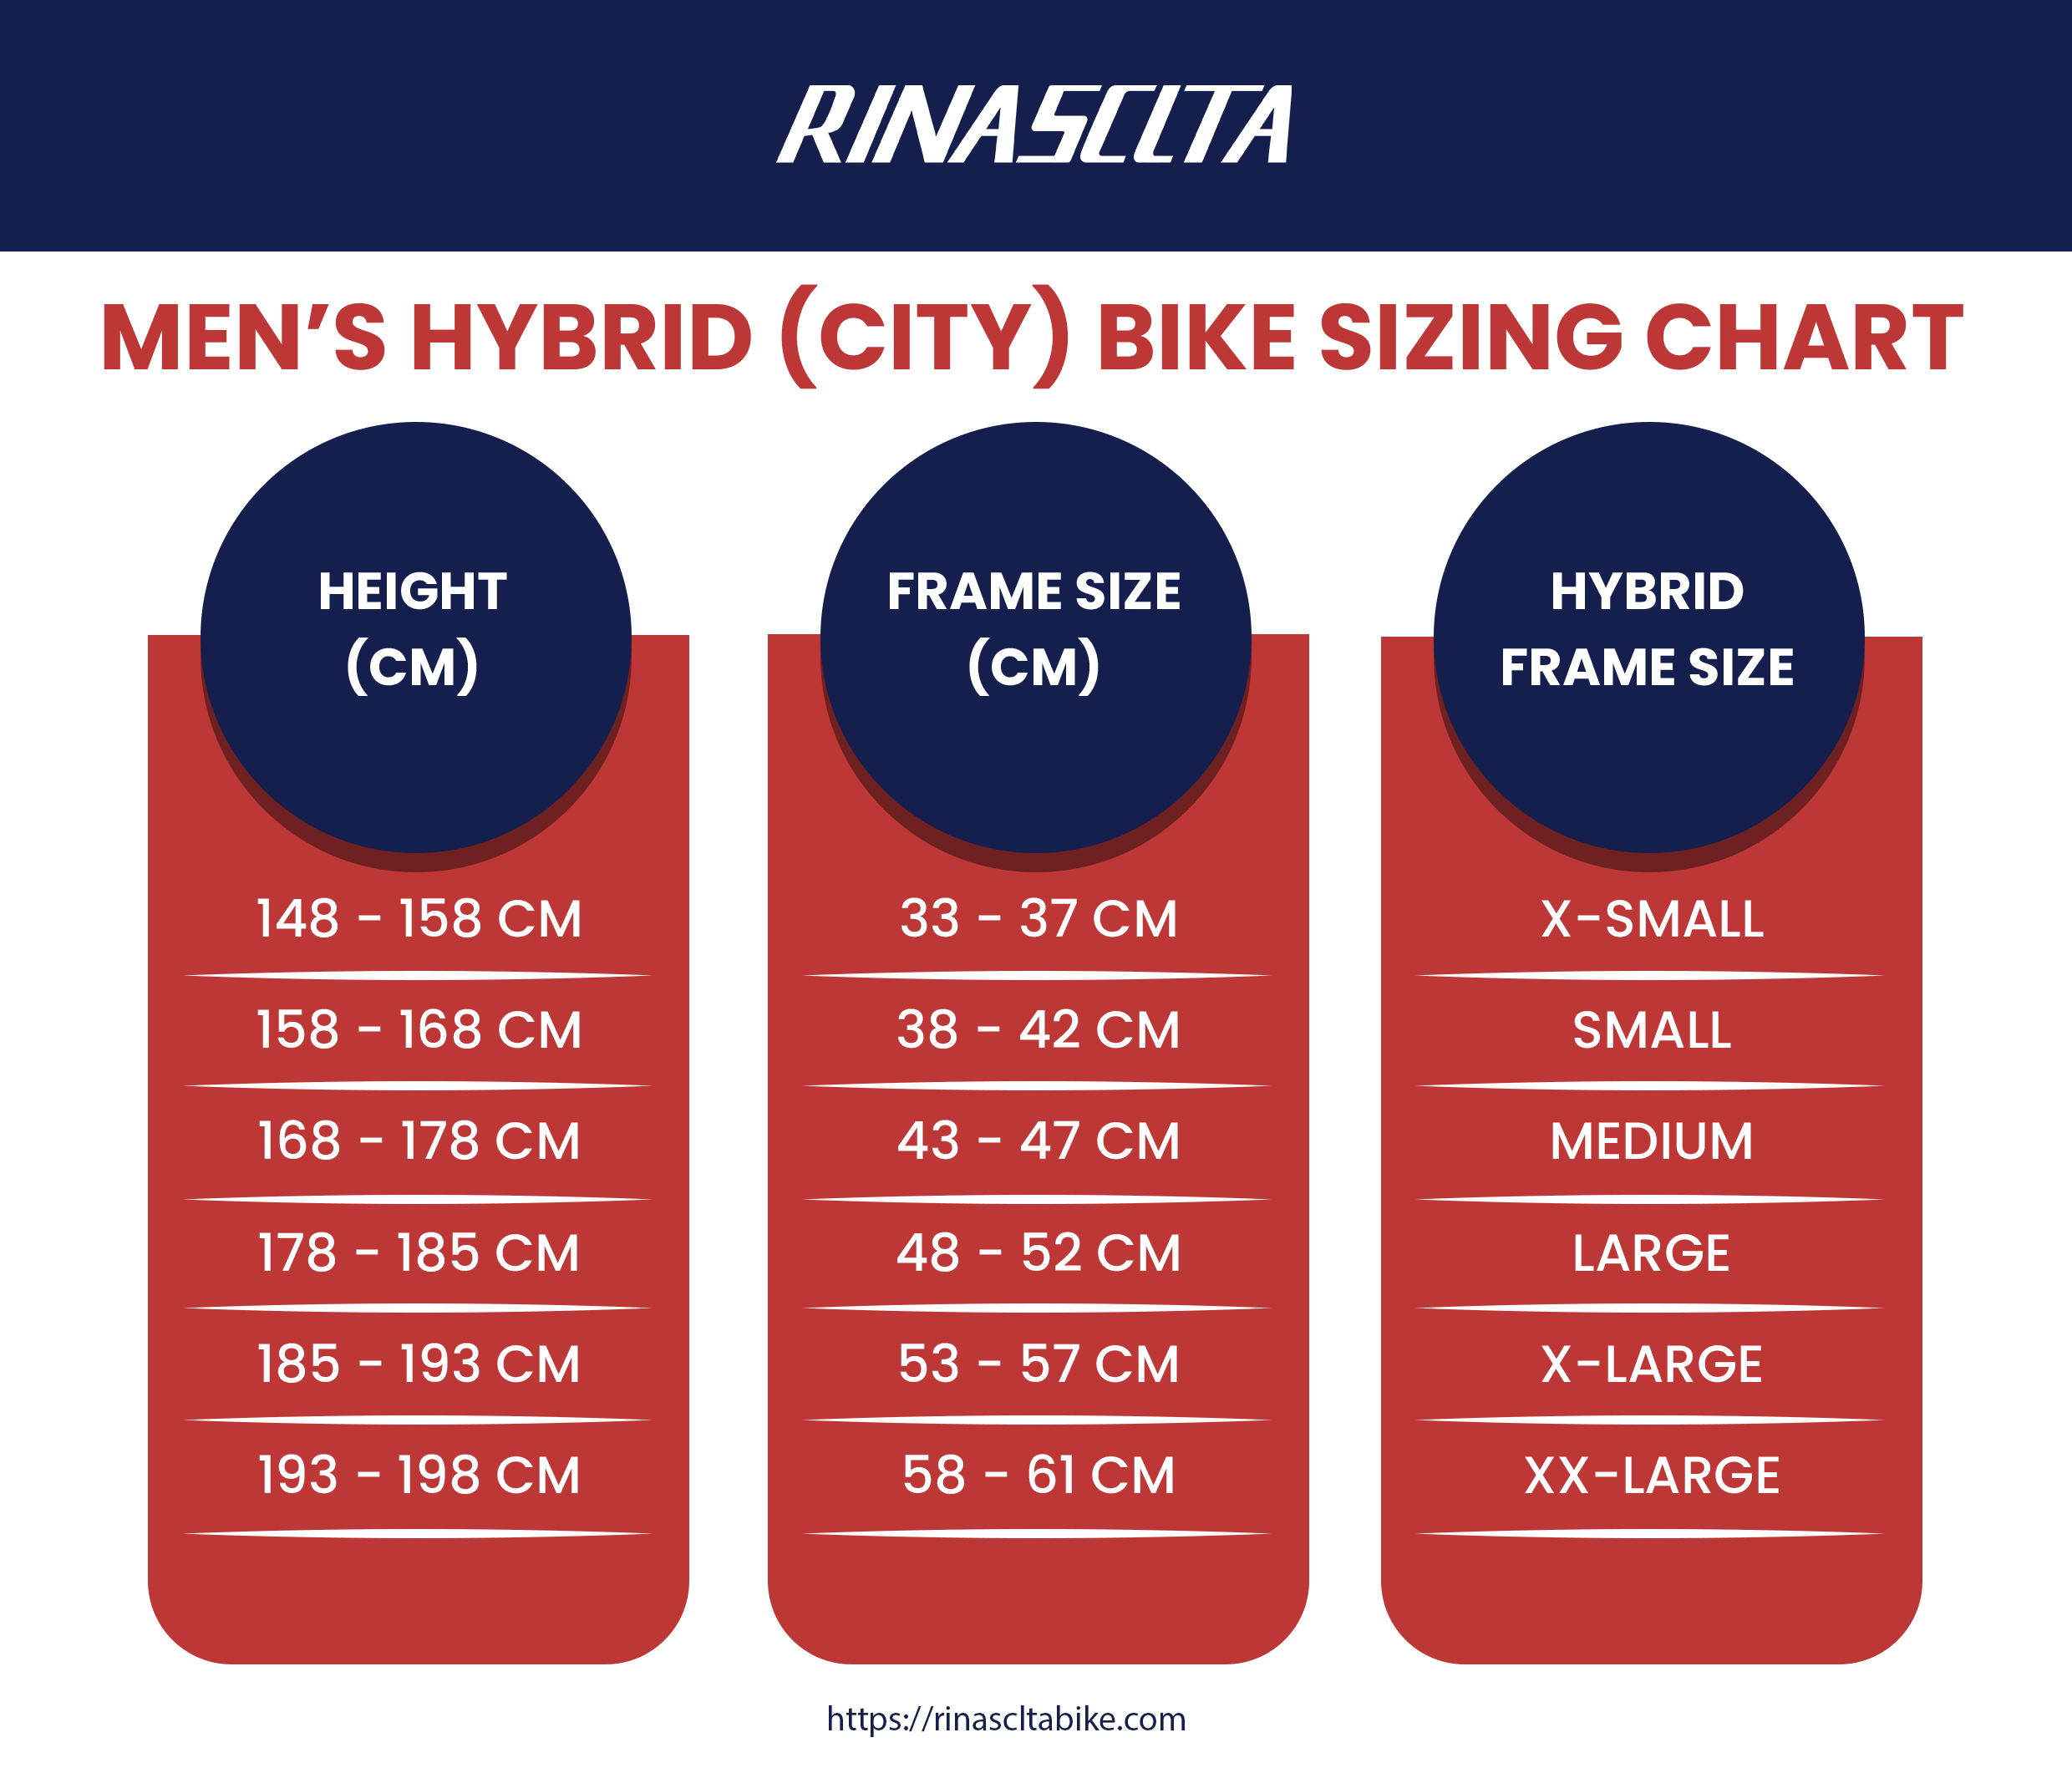 men's hybrid (city) bike sizing chart